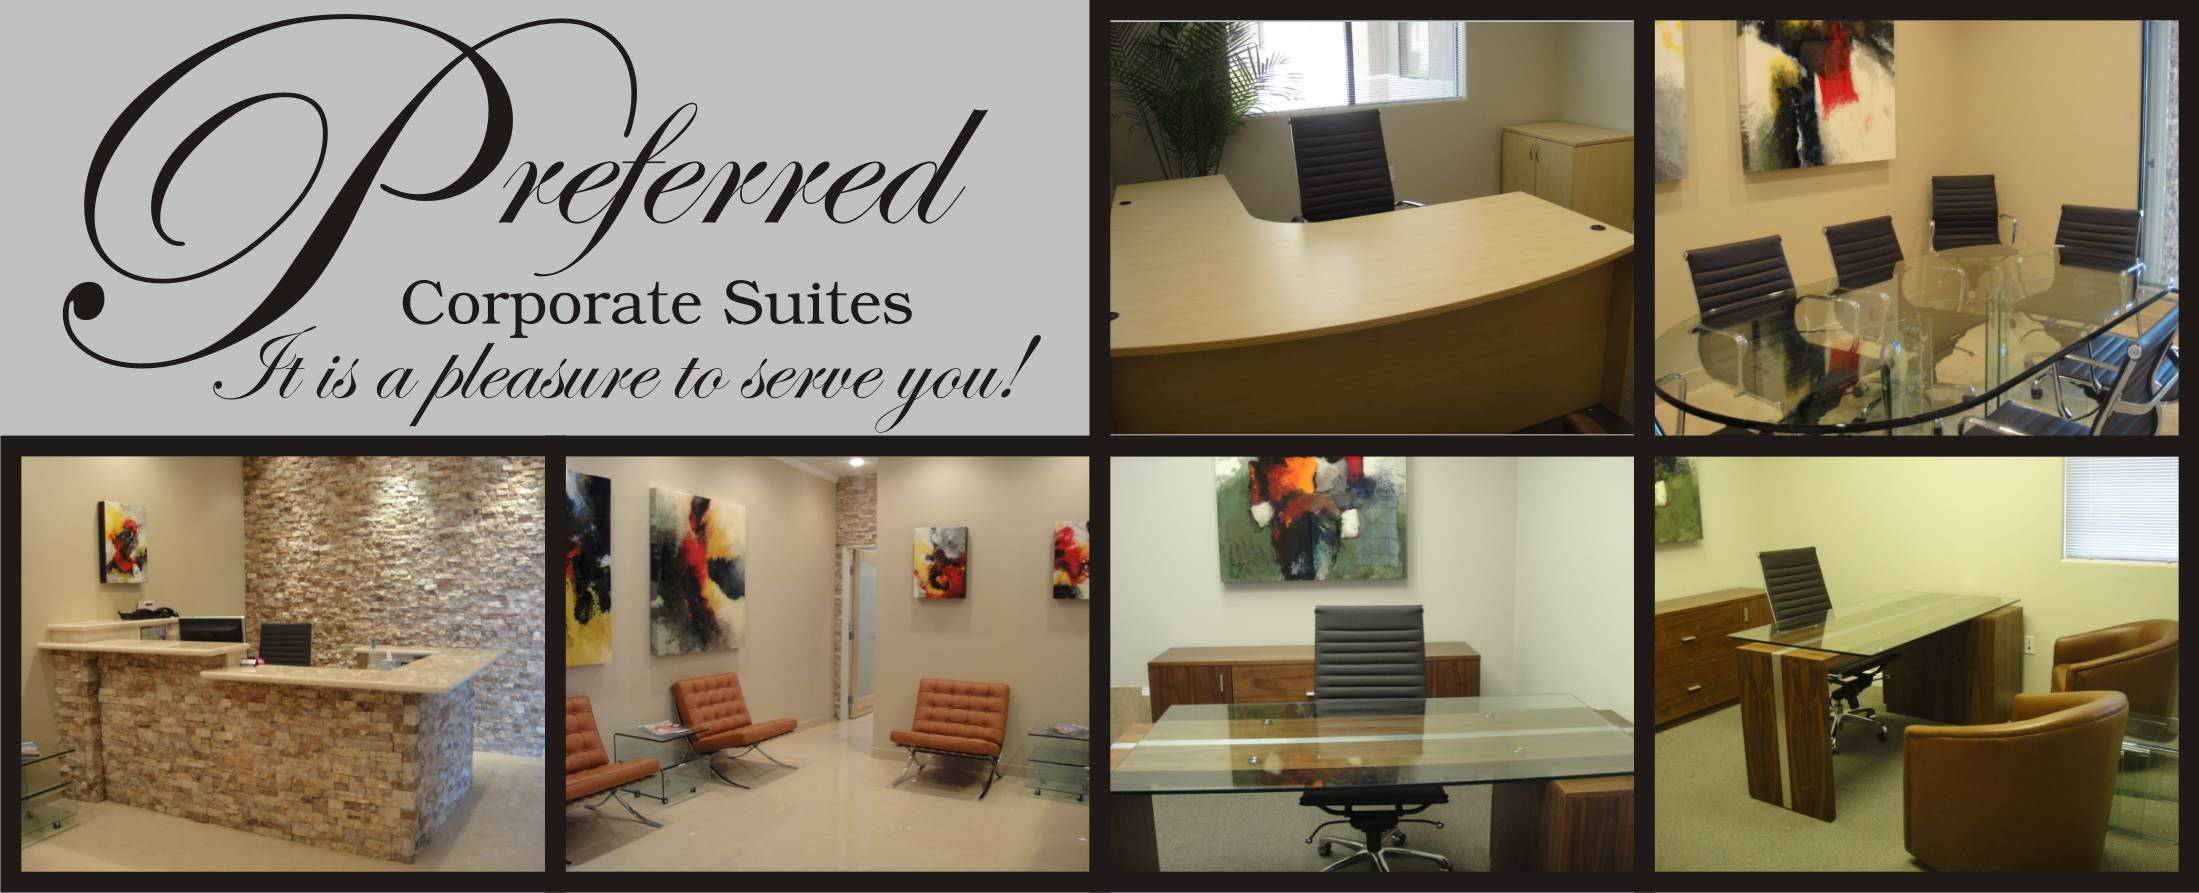 Preferred Corporate Suites